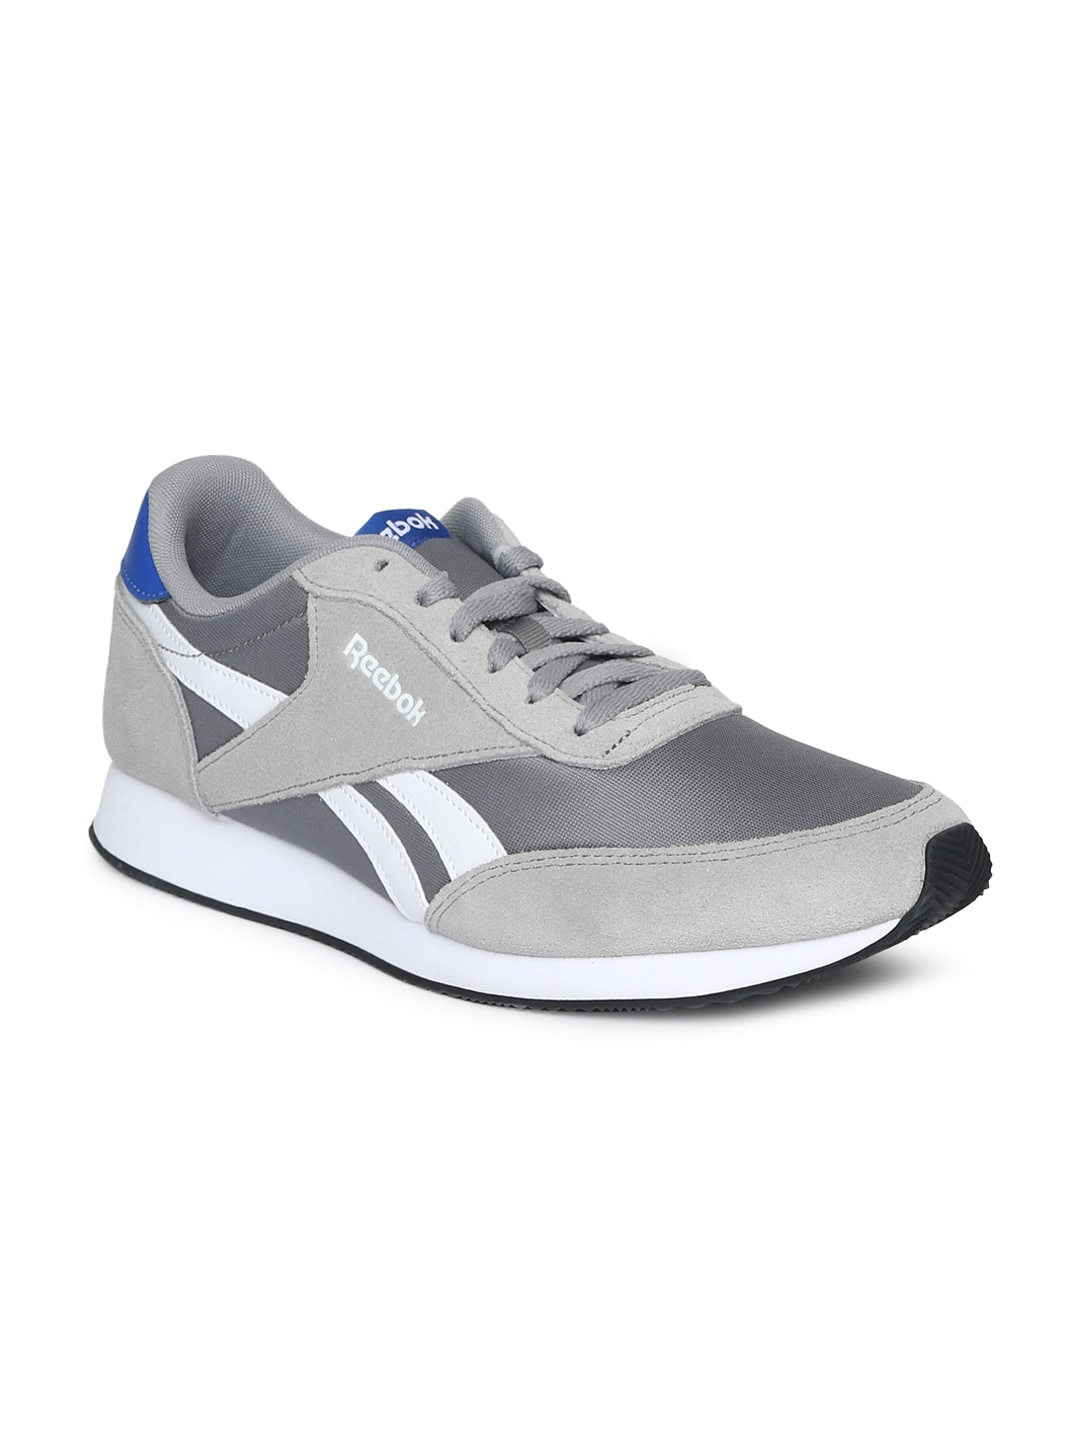 76106f759c0b Reebok Classic Shoes - Buy Reebok Classic Shoes online in India